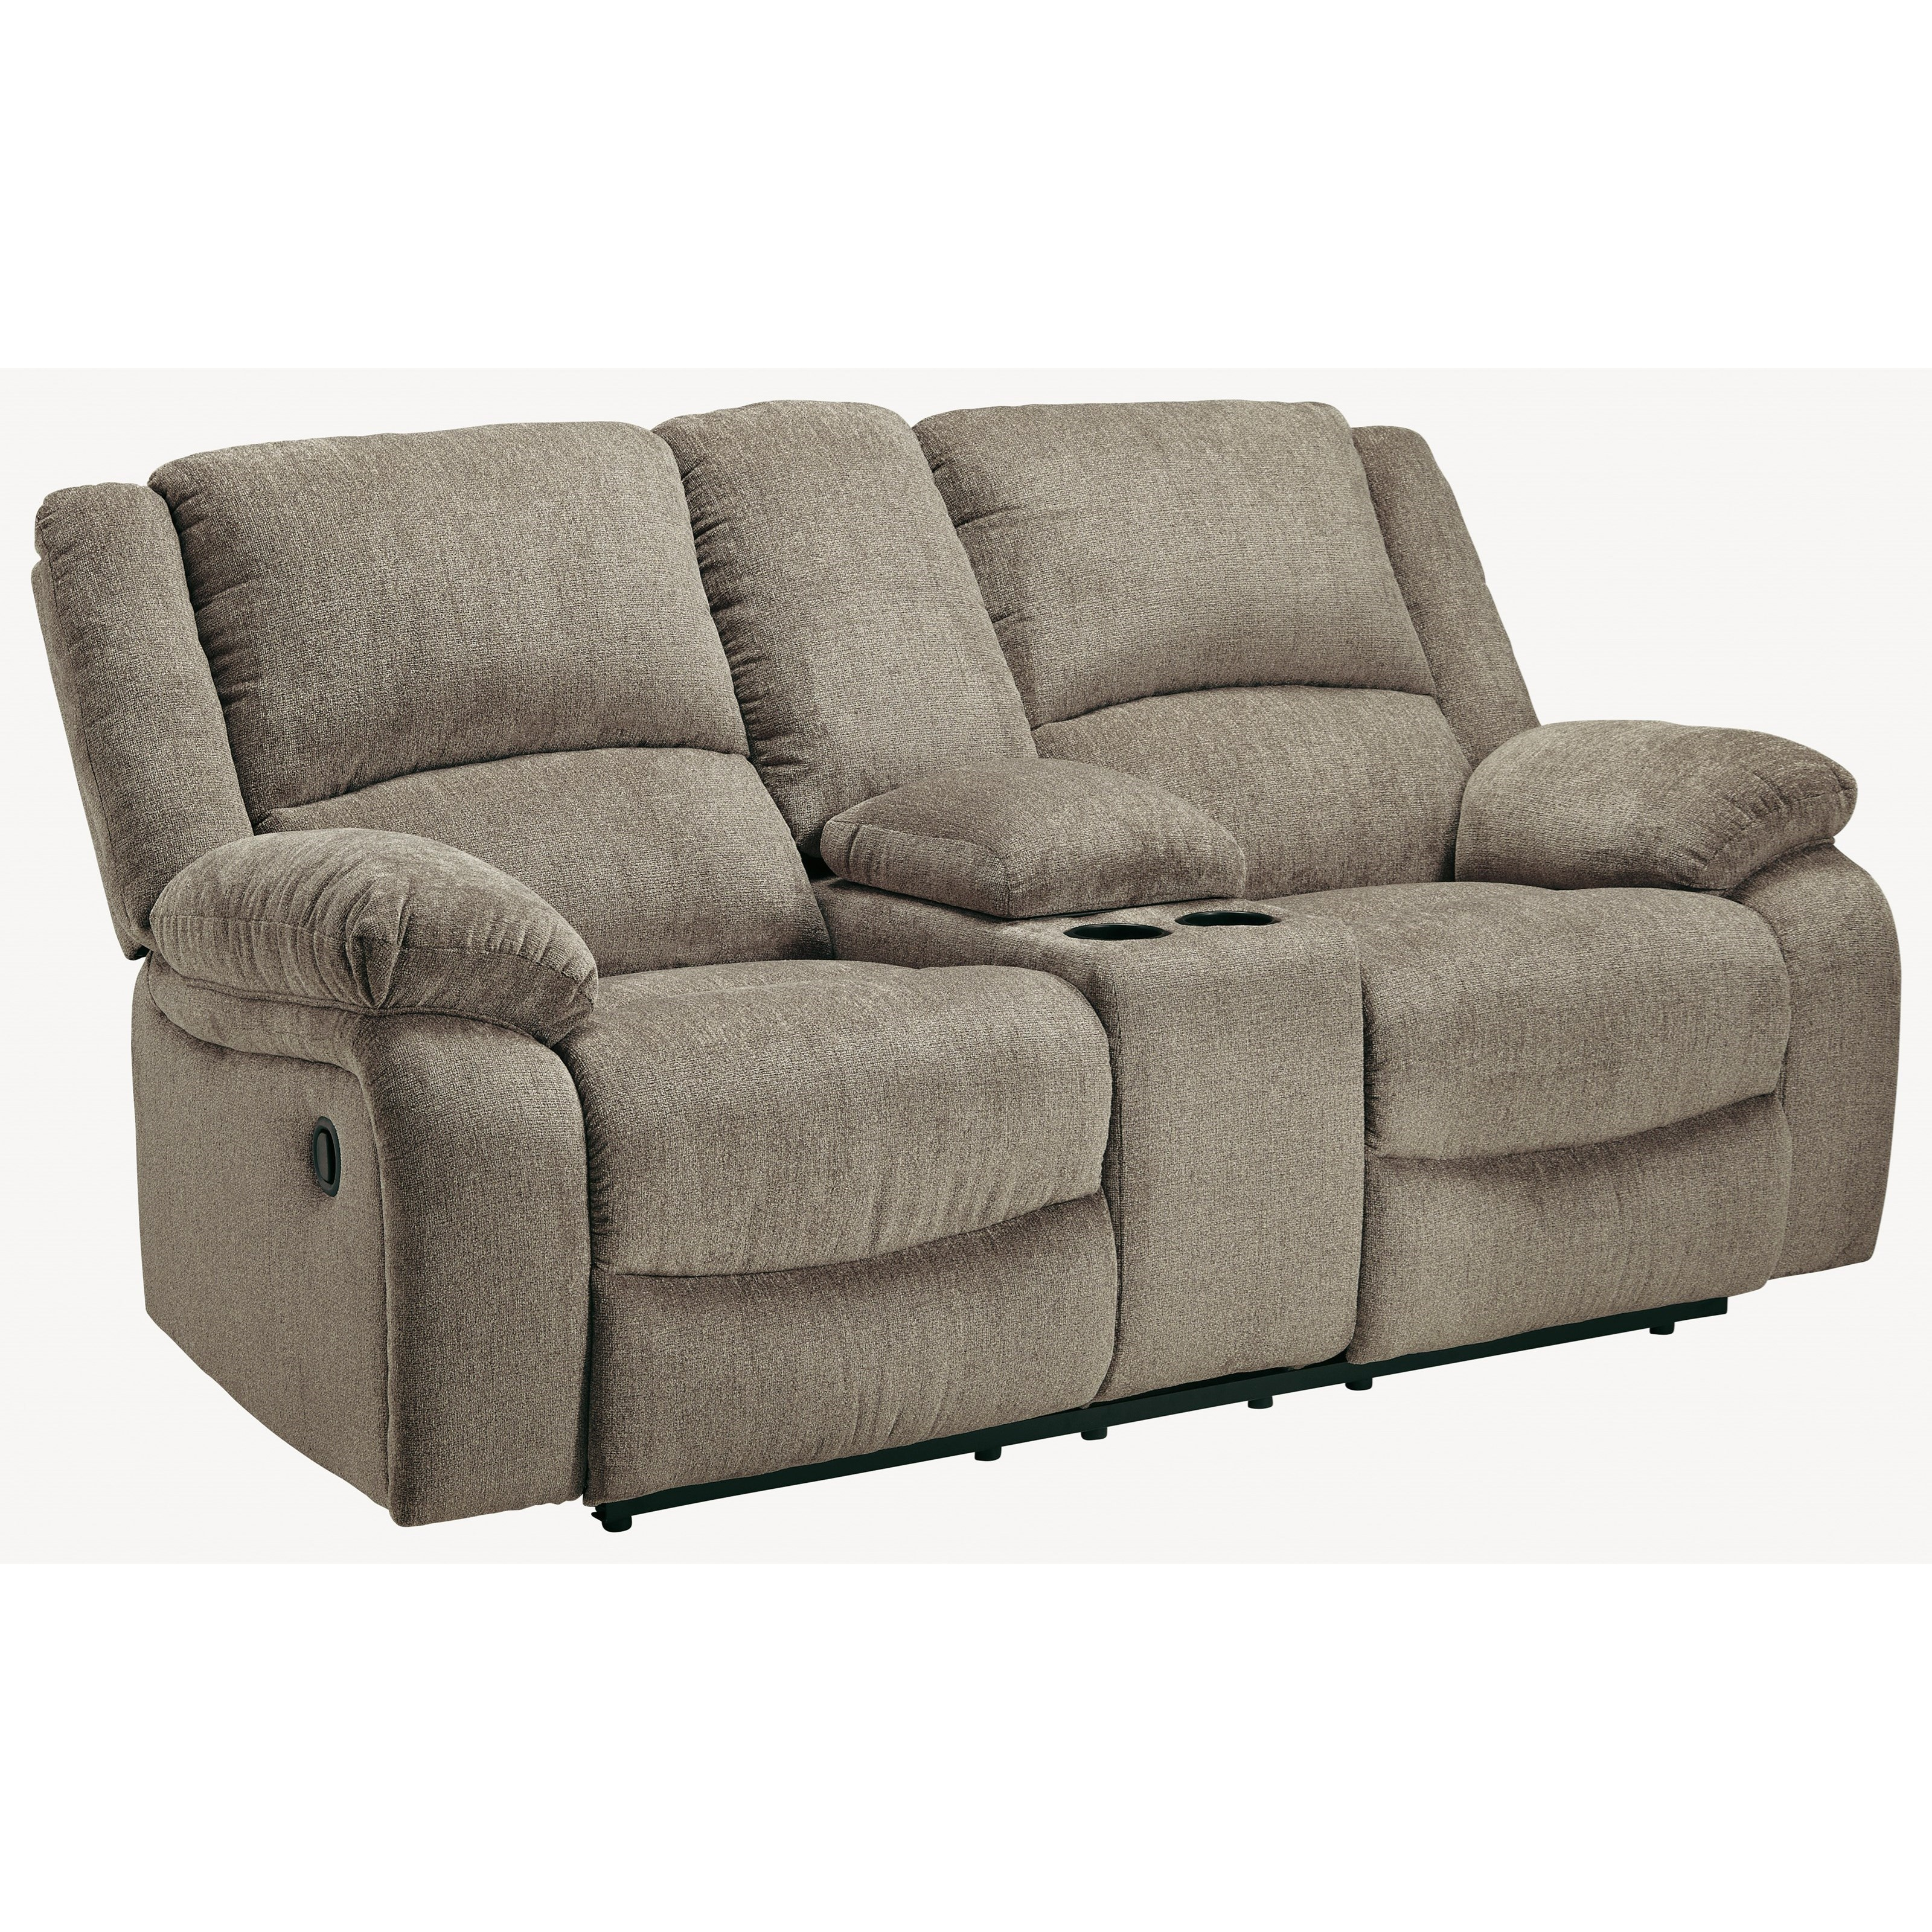 Draycoll Double Reclining Loveseat w/ Console by Signature Design by Ashley at Northeast Factory Direct